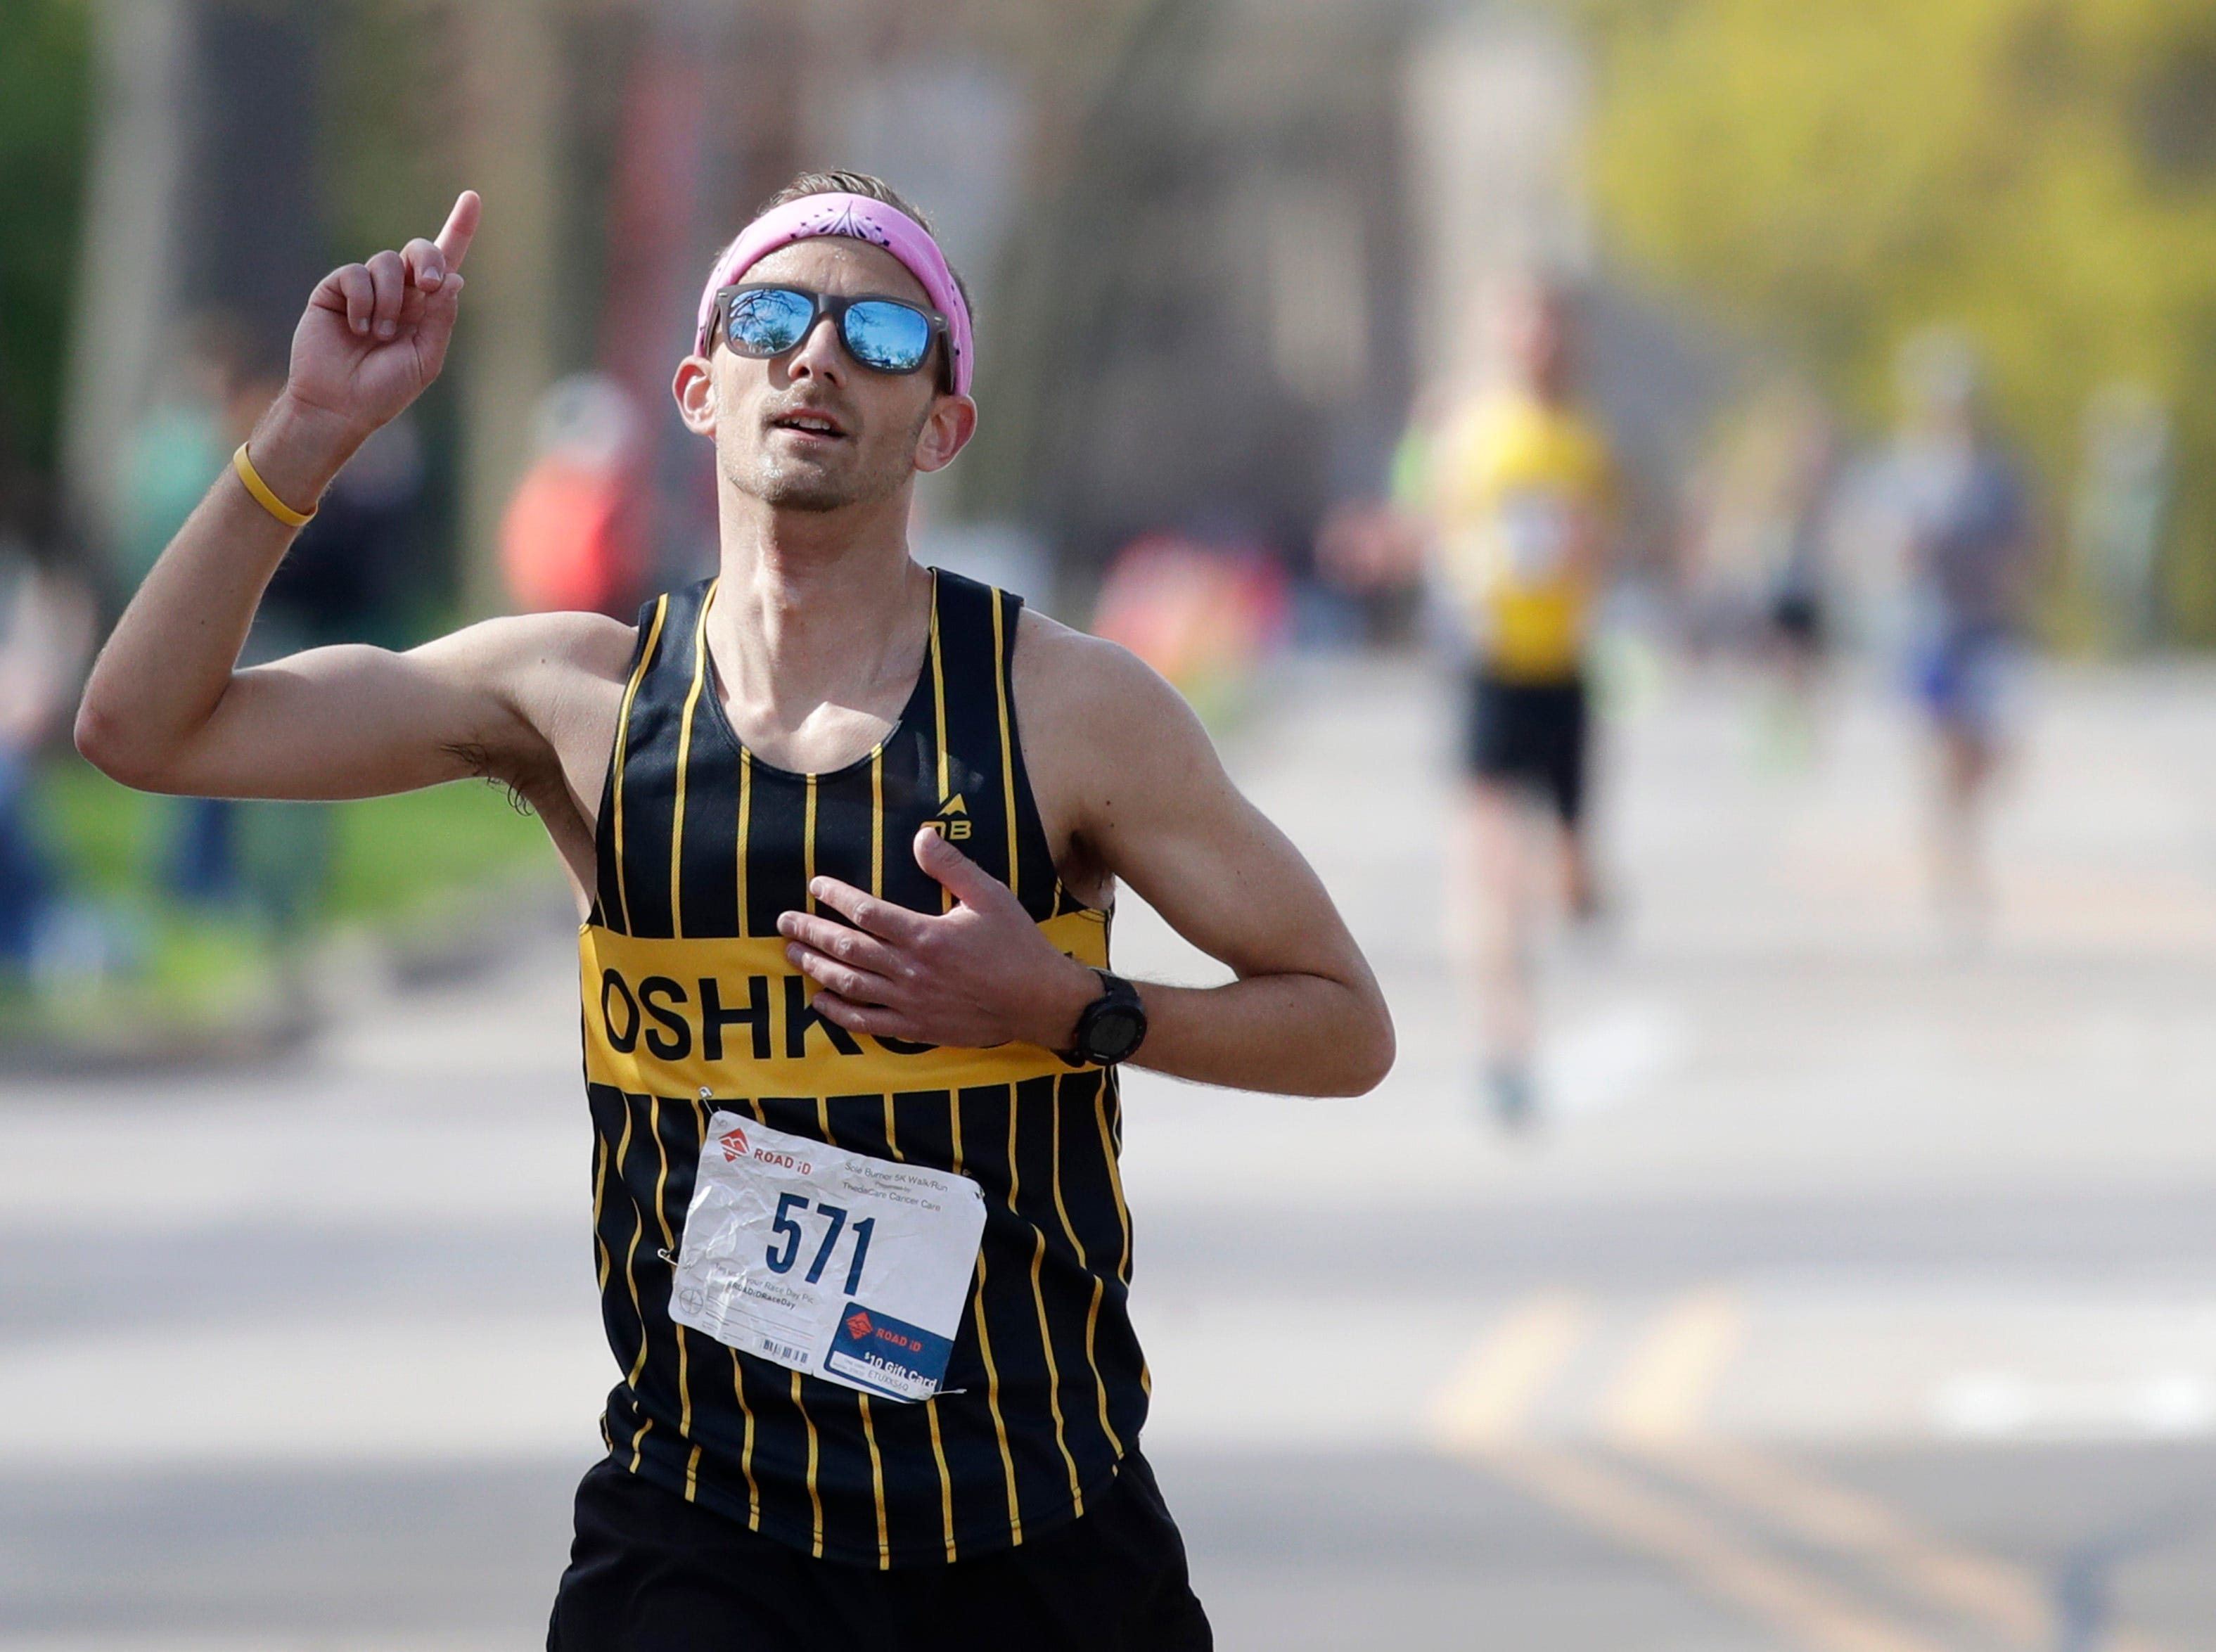 Erik Hofferber, of Neenah, takes first place in the Sole Burner 5K Walk-Run Saturday, May 11, 2019, in Appleton, Wis. 